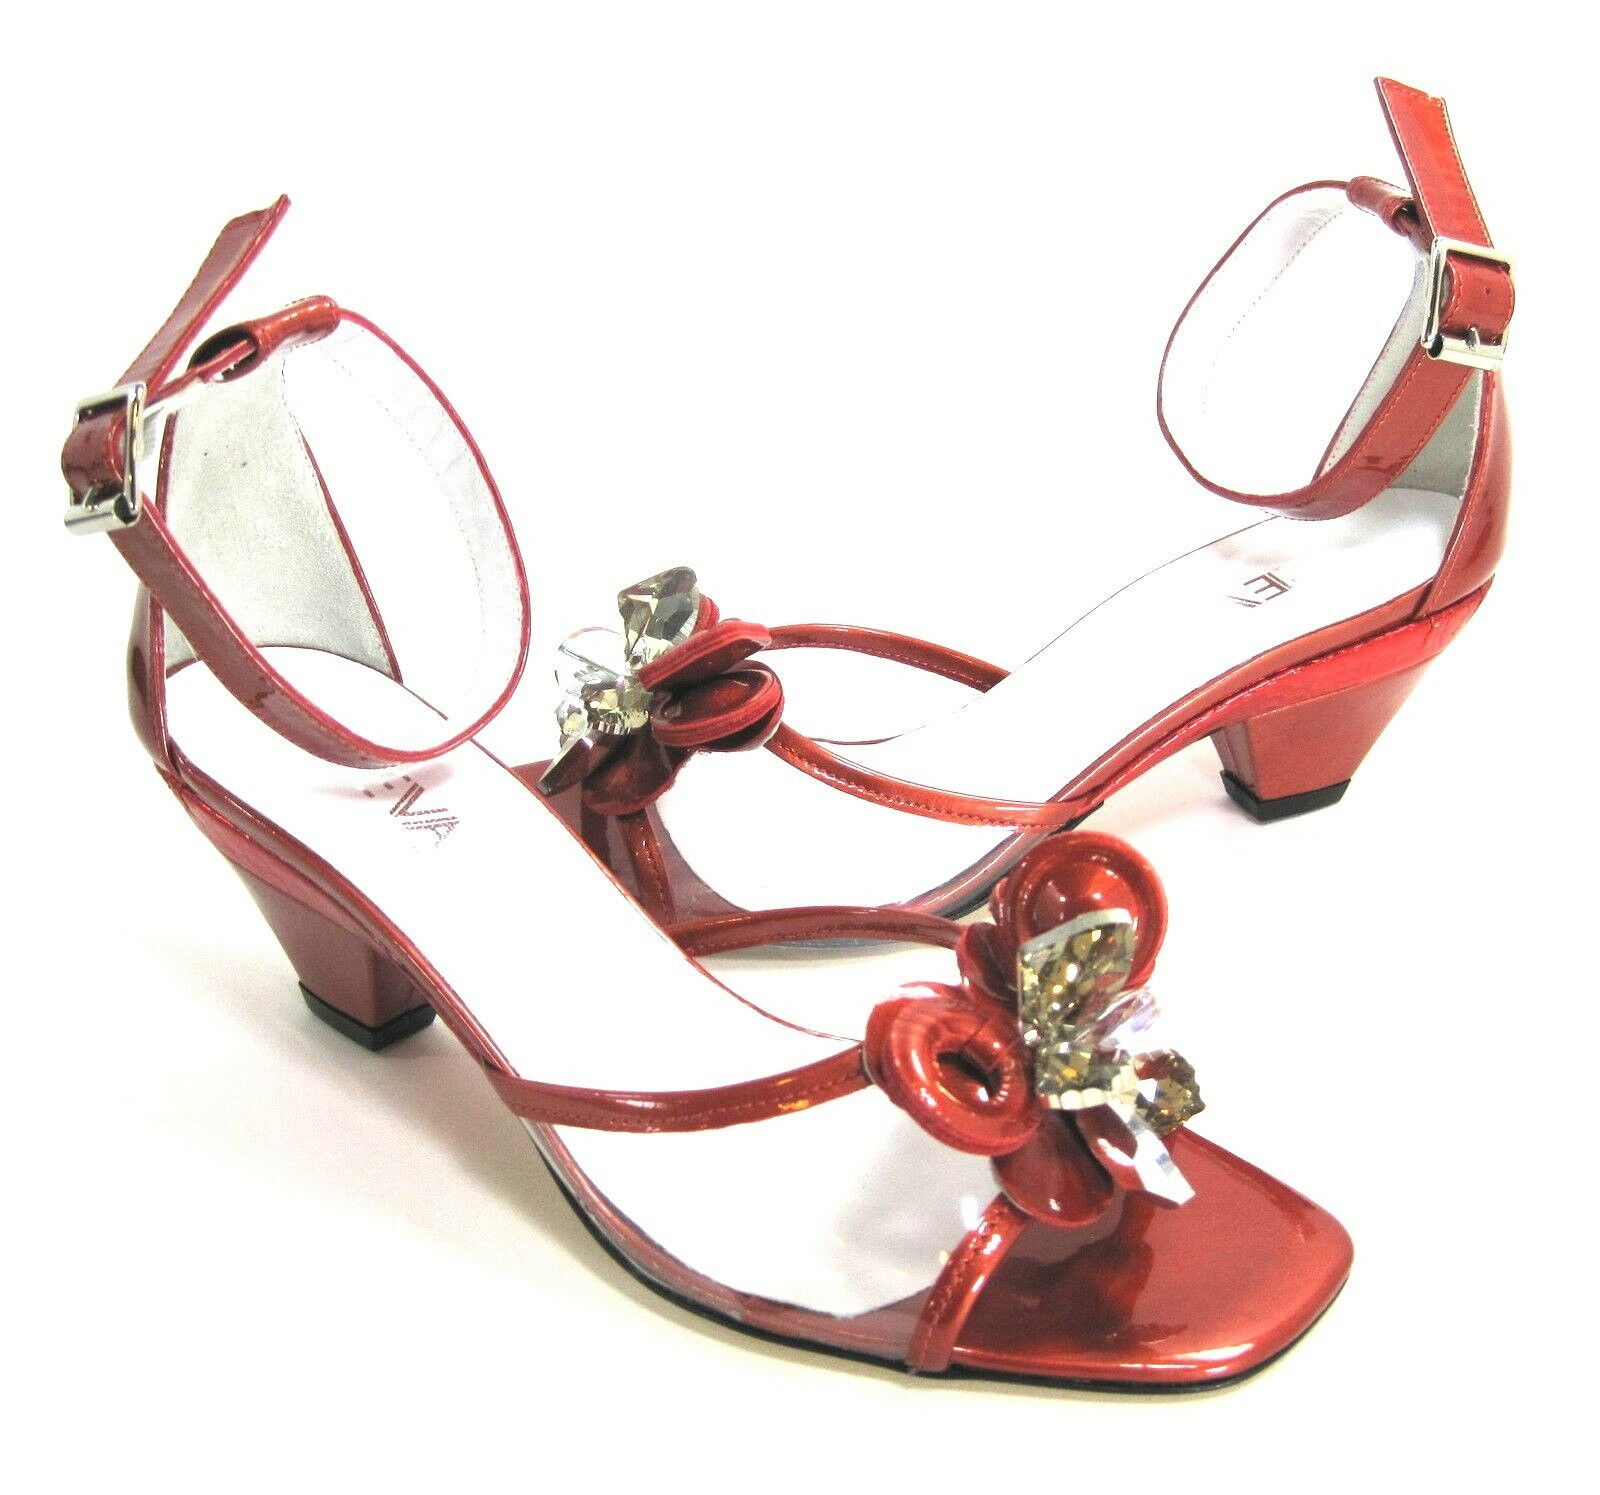 PREVATA SASH ANKLE-STRAP SANDALS RED PATENT VINYL SYNTHETIC US SIZE 7 NARROW (N)